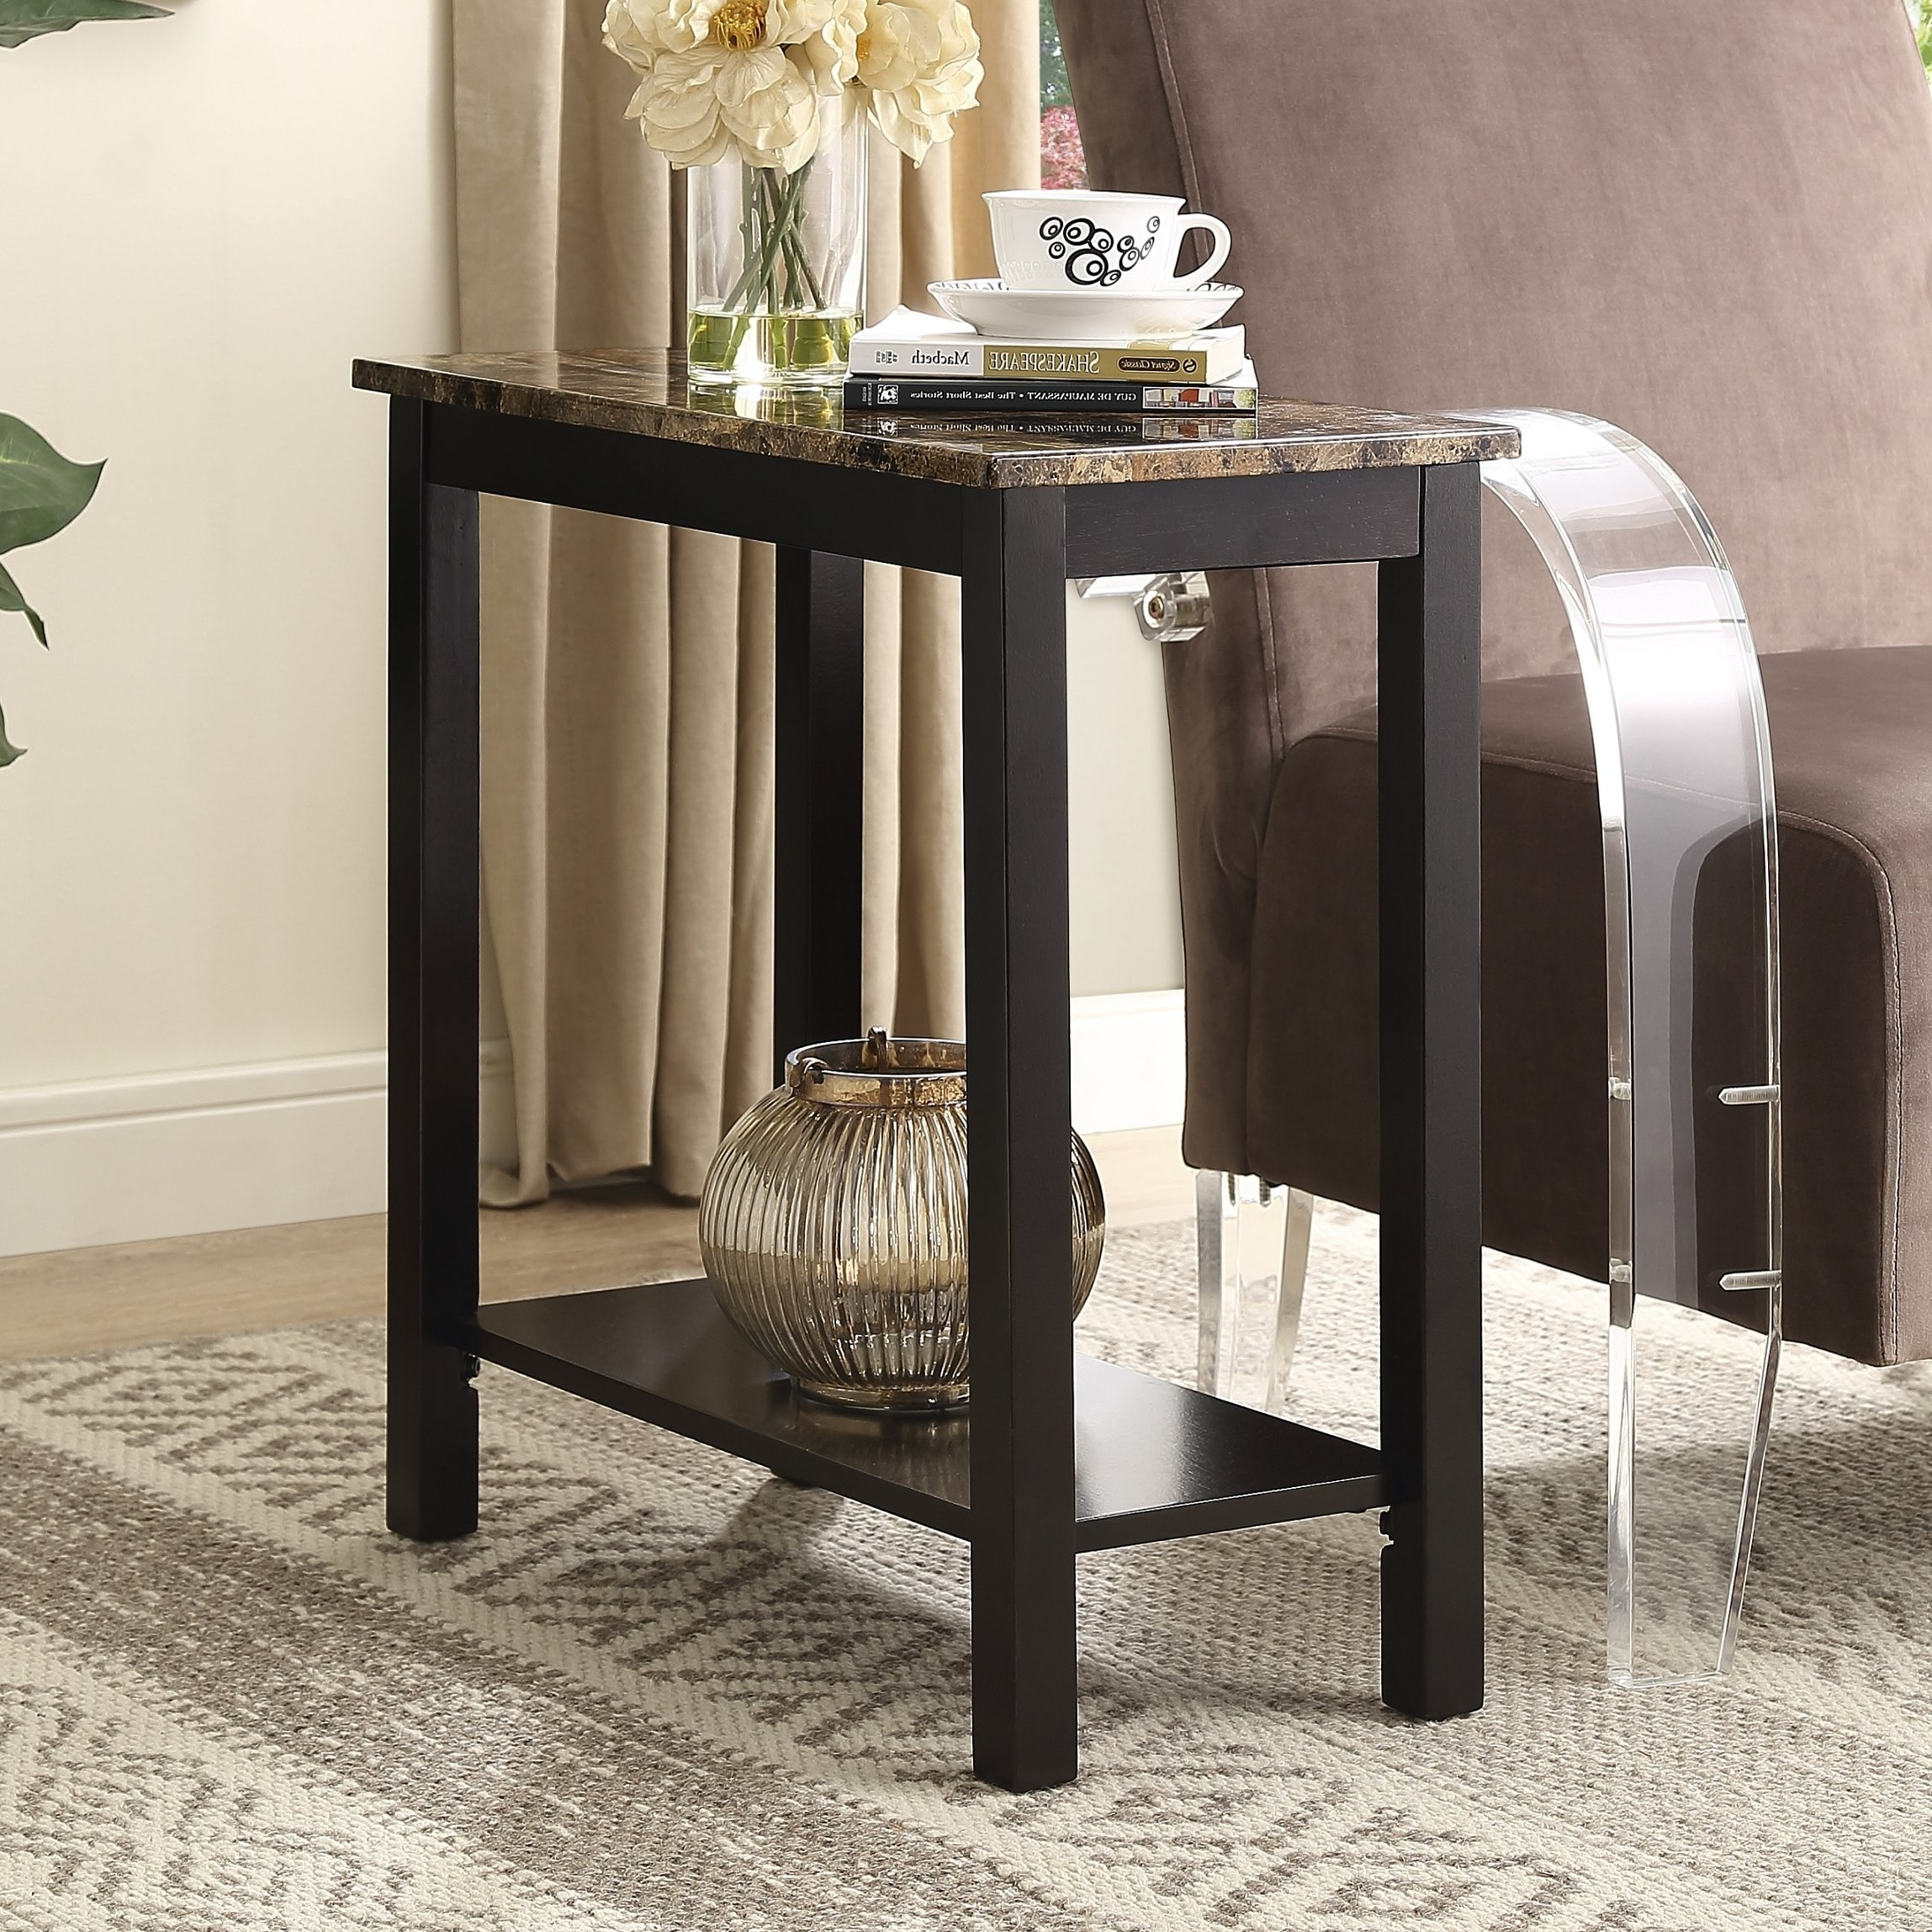 Wayfair Regarding Preferred Lassen Square Lift Top Cocktail Tables (View 19 of 20)